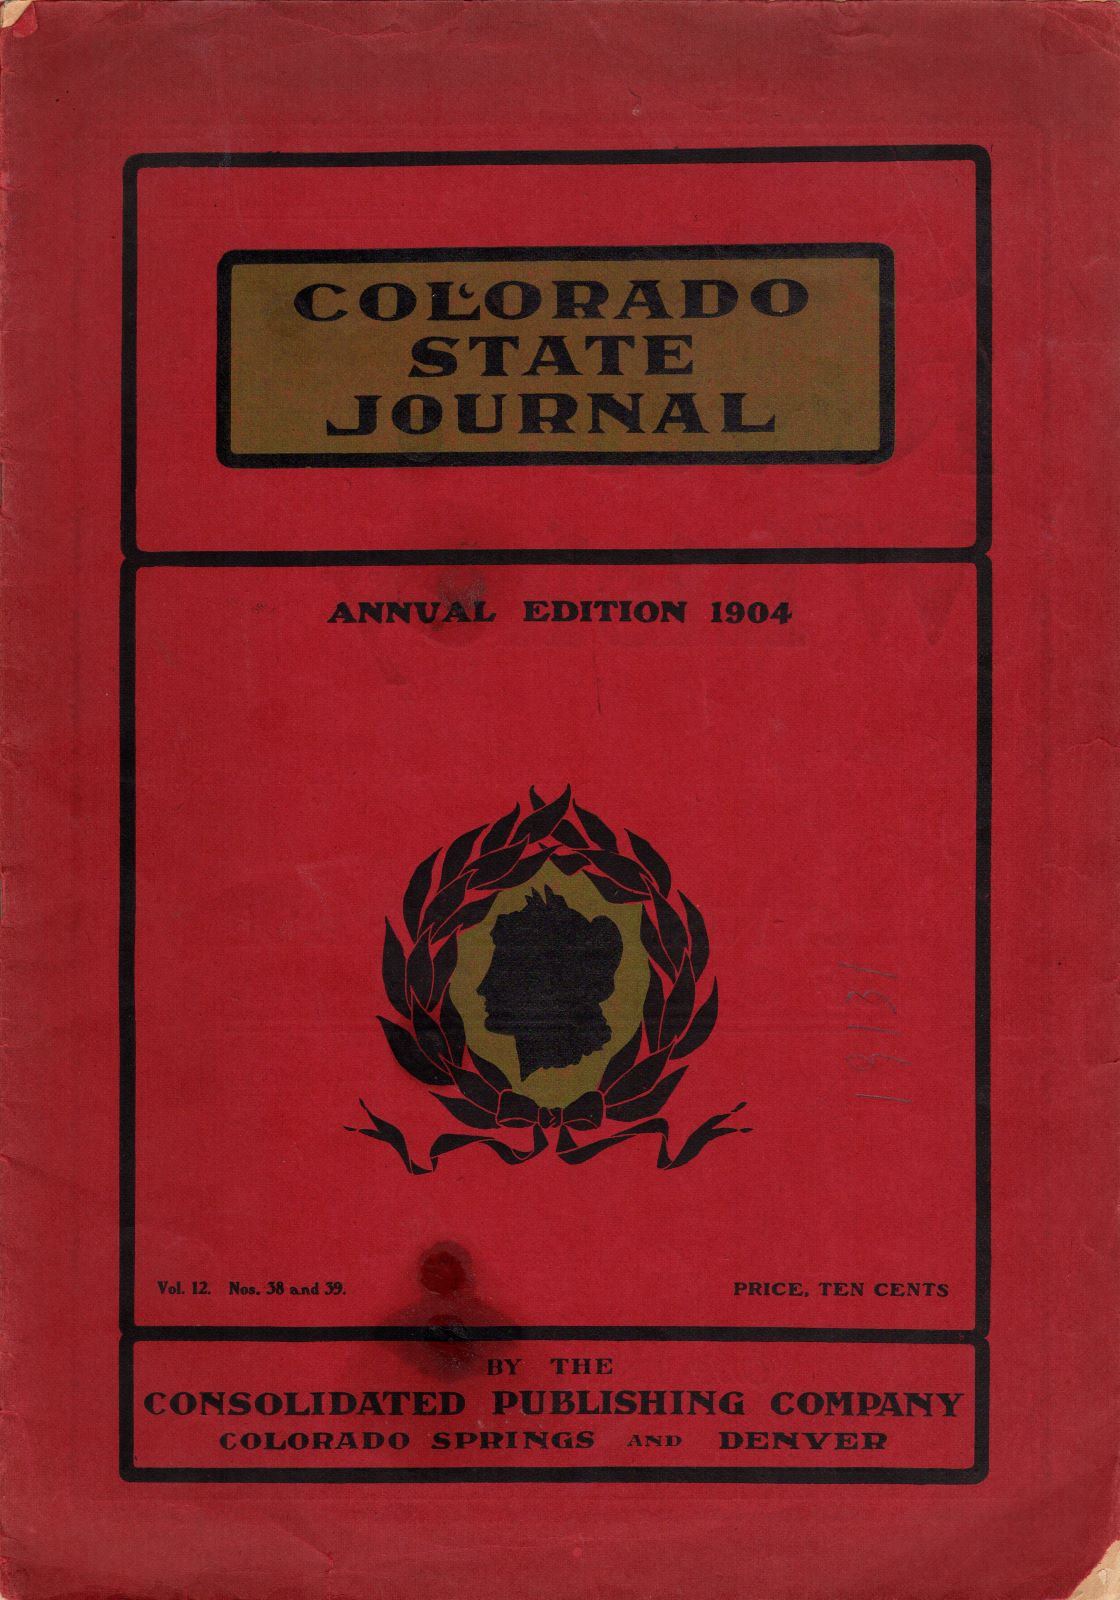 Front of Colorado State Journal, 1904 Annual Edition